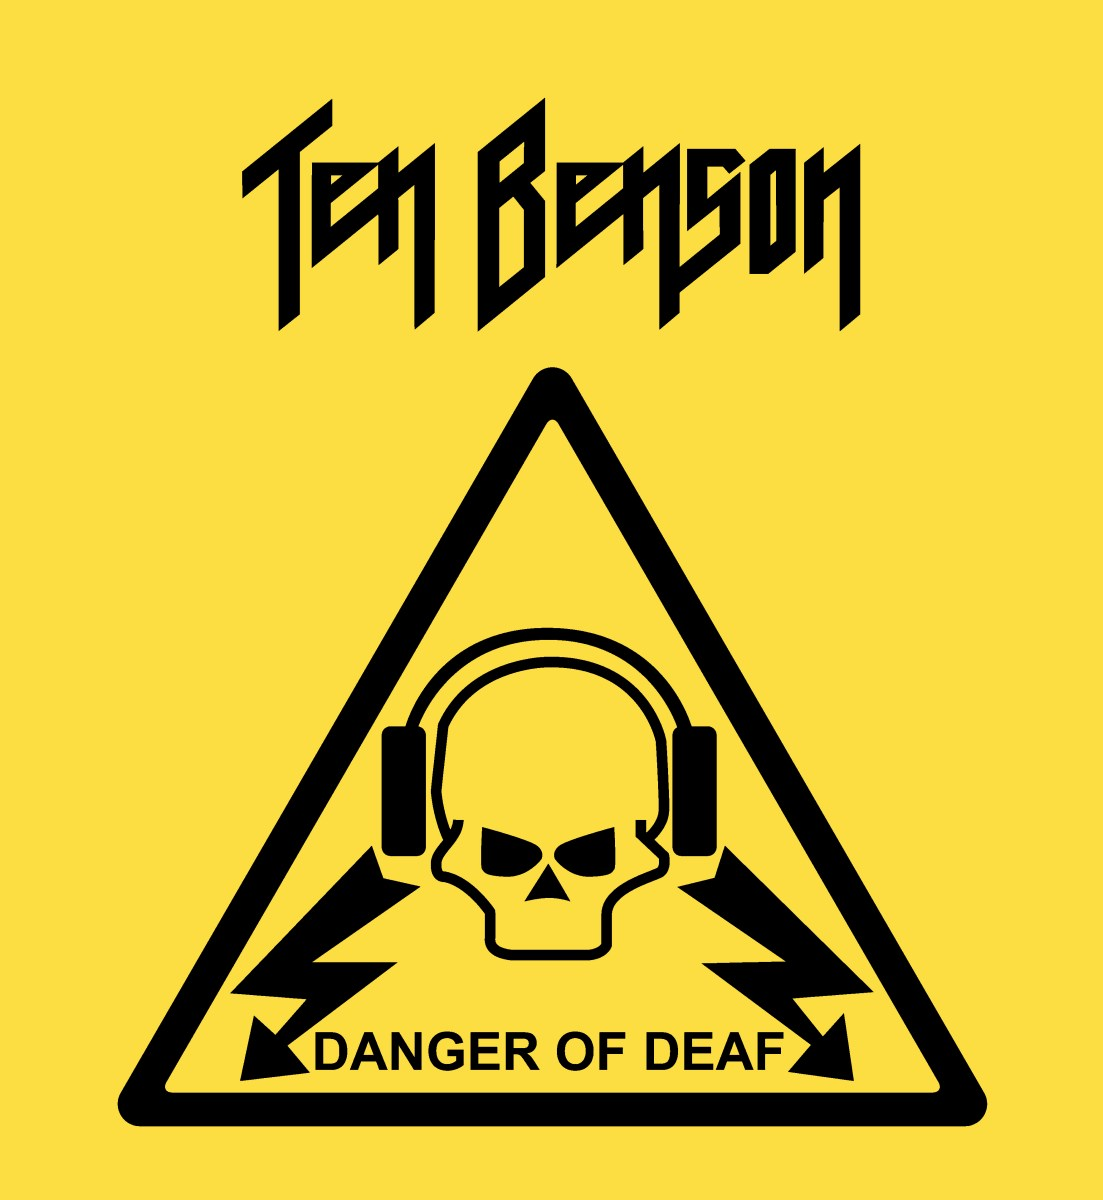 Ten Benson - Danger of Deaf Reissue (Drastic Plastic Records)